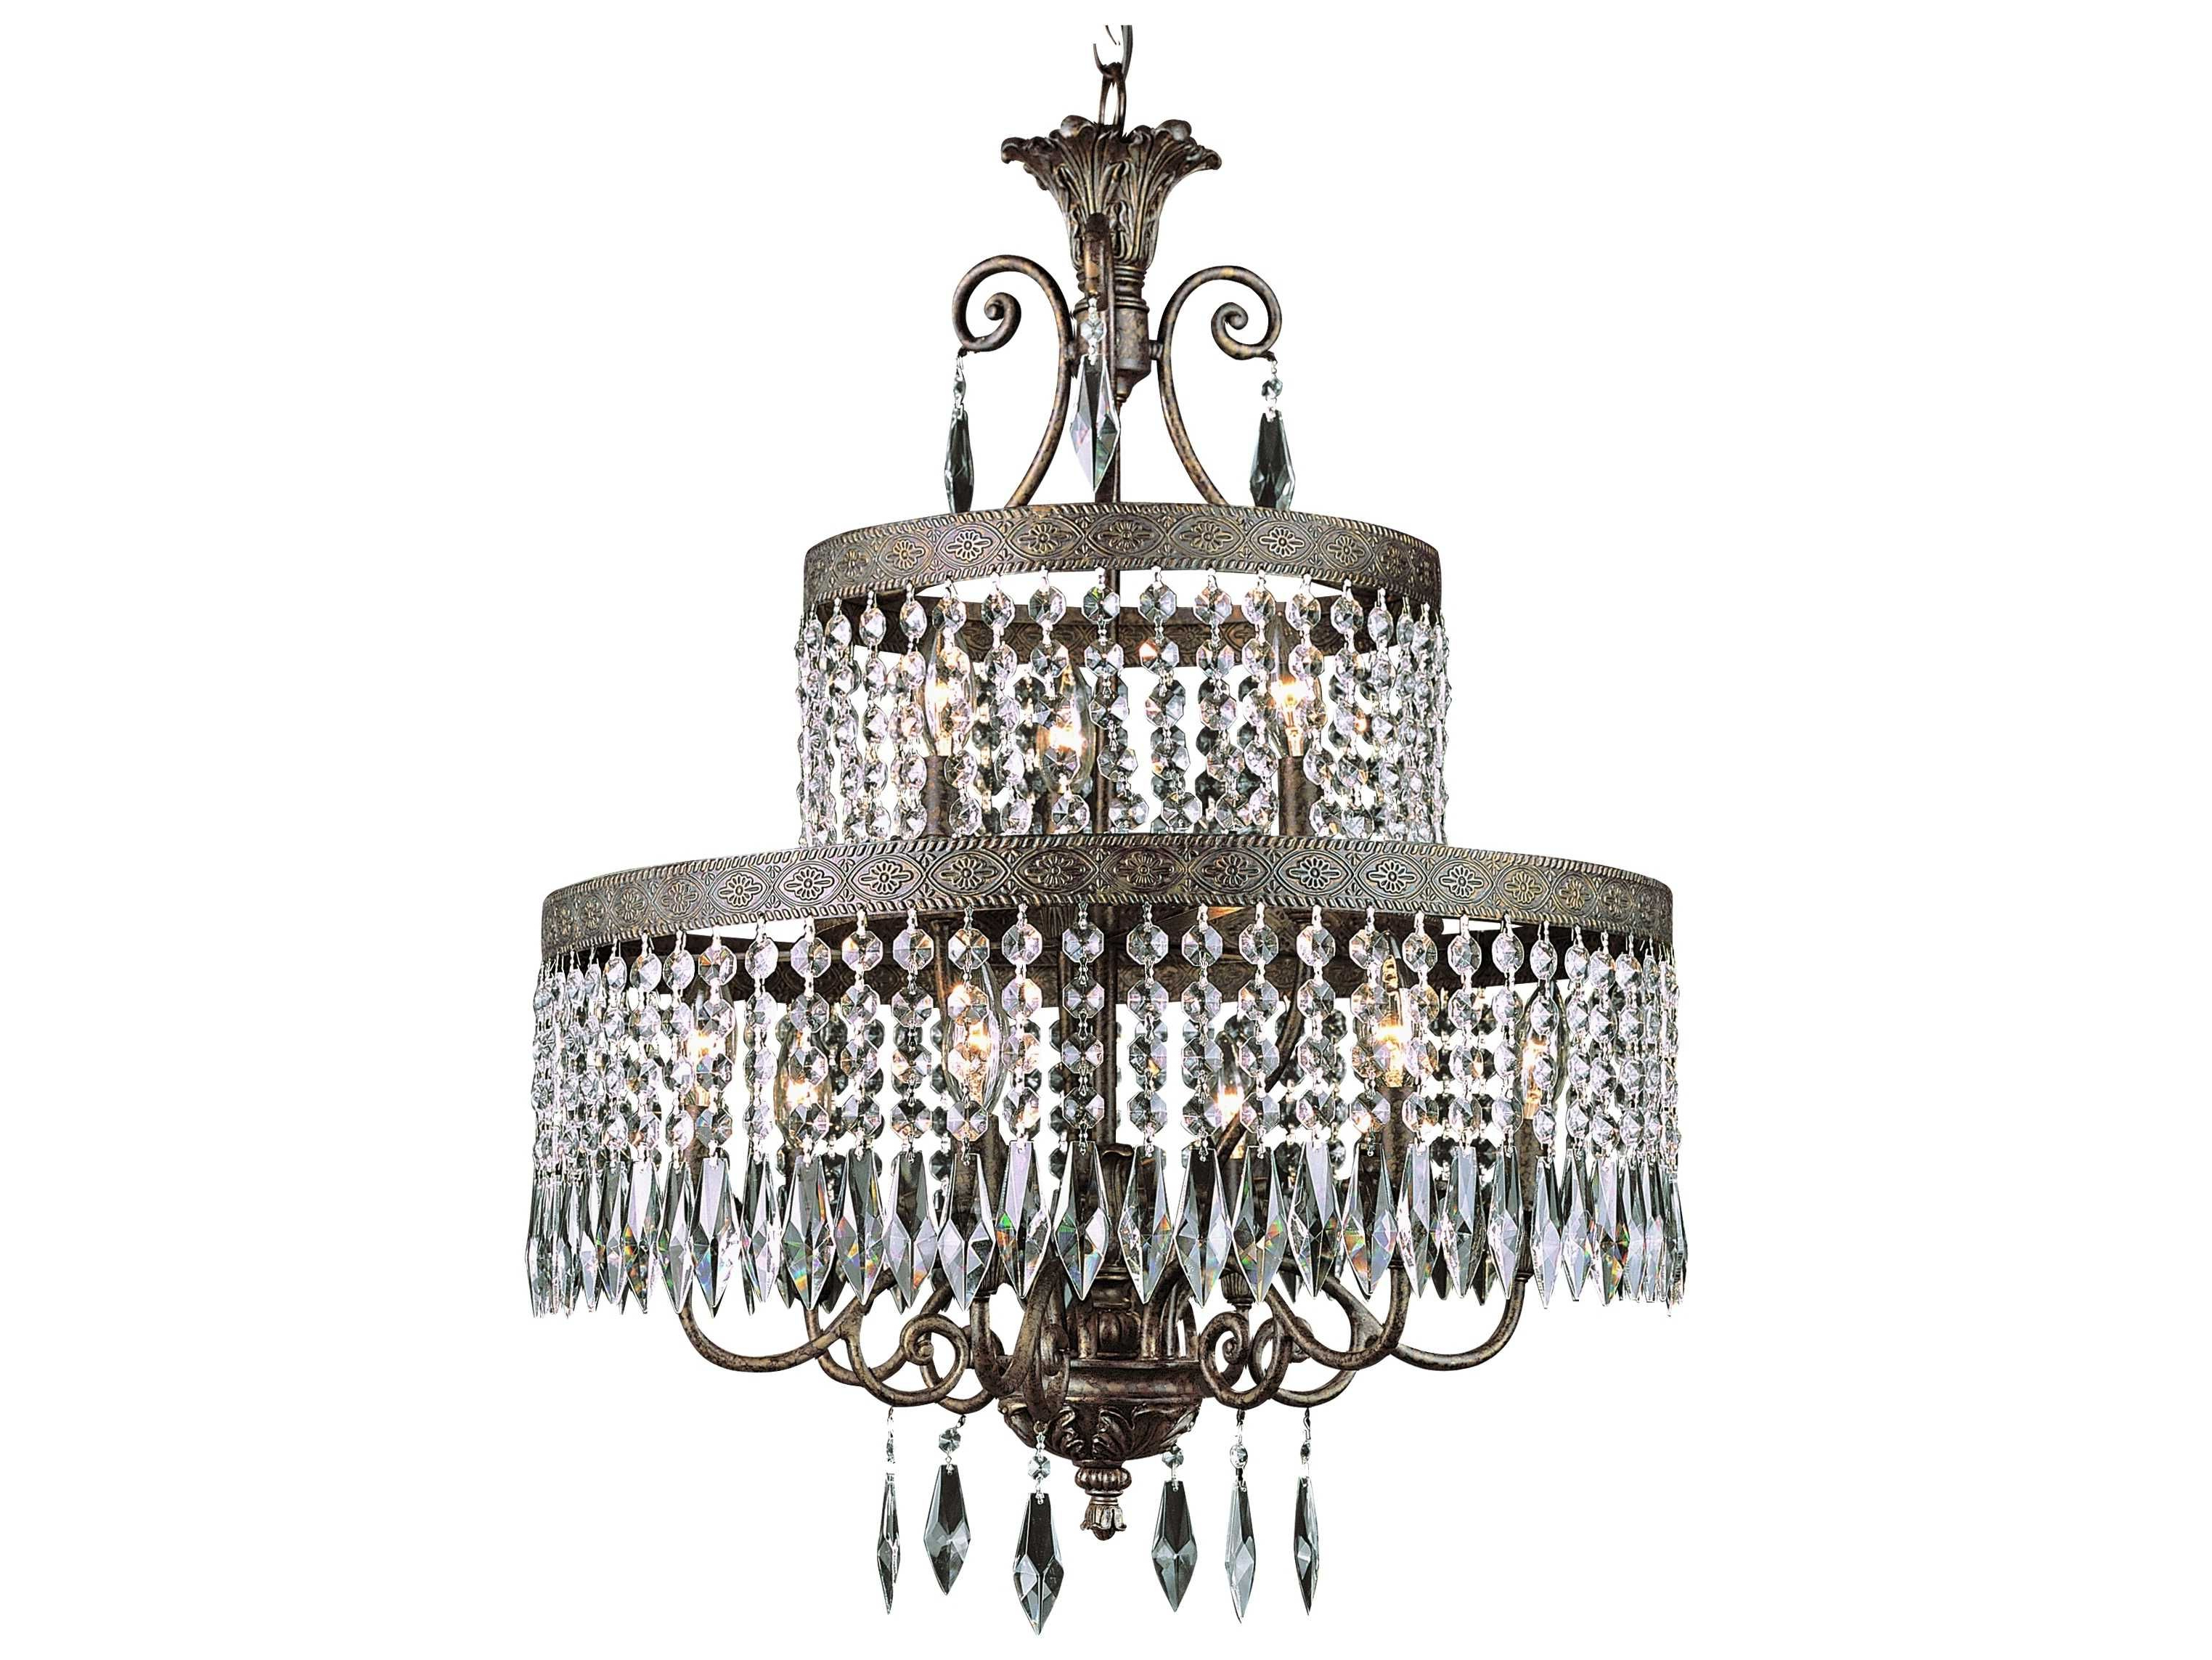 Most Popular Better Price Avail Trans Globe Lighting Eclectic Boutique With Benedetto 5 Light Crystal Chandeliers (View 15 of 20)